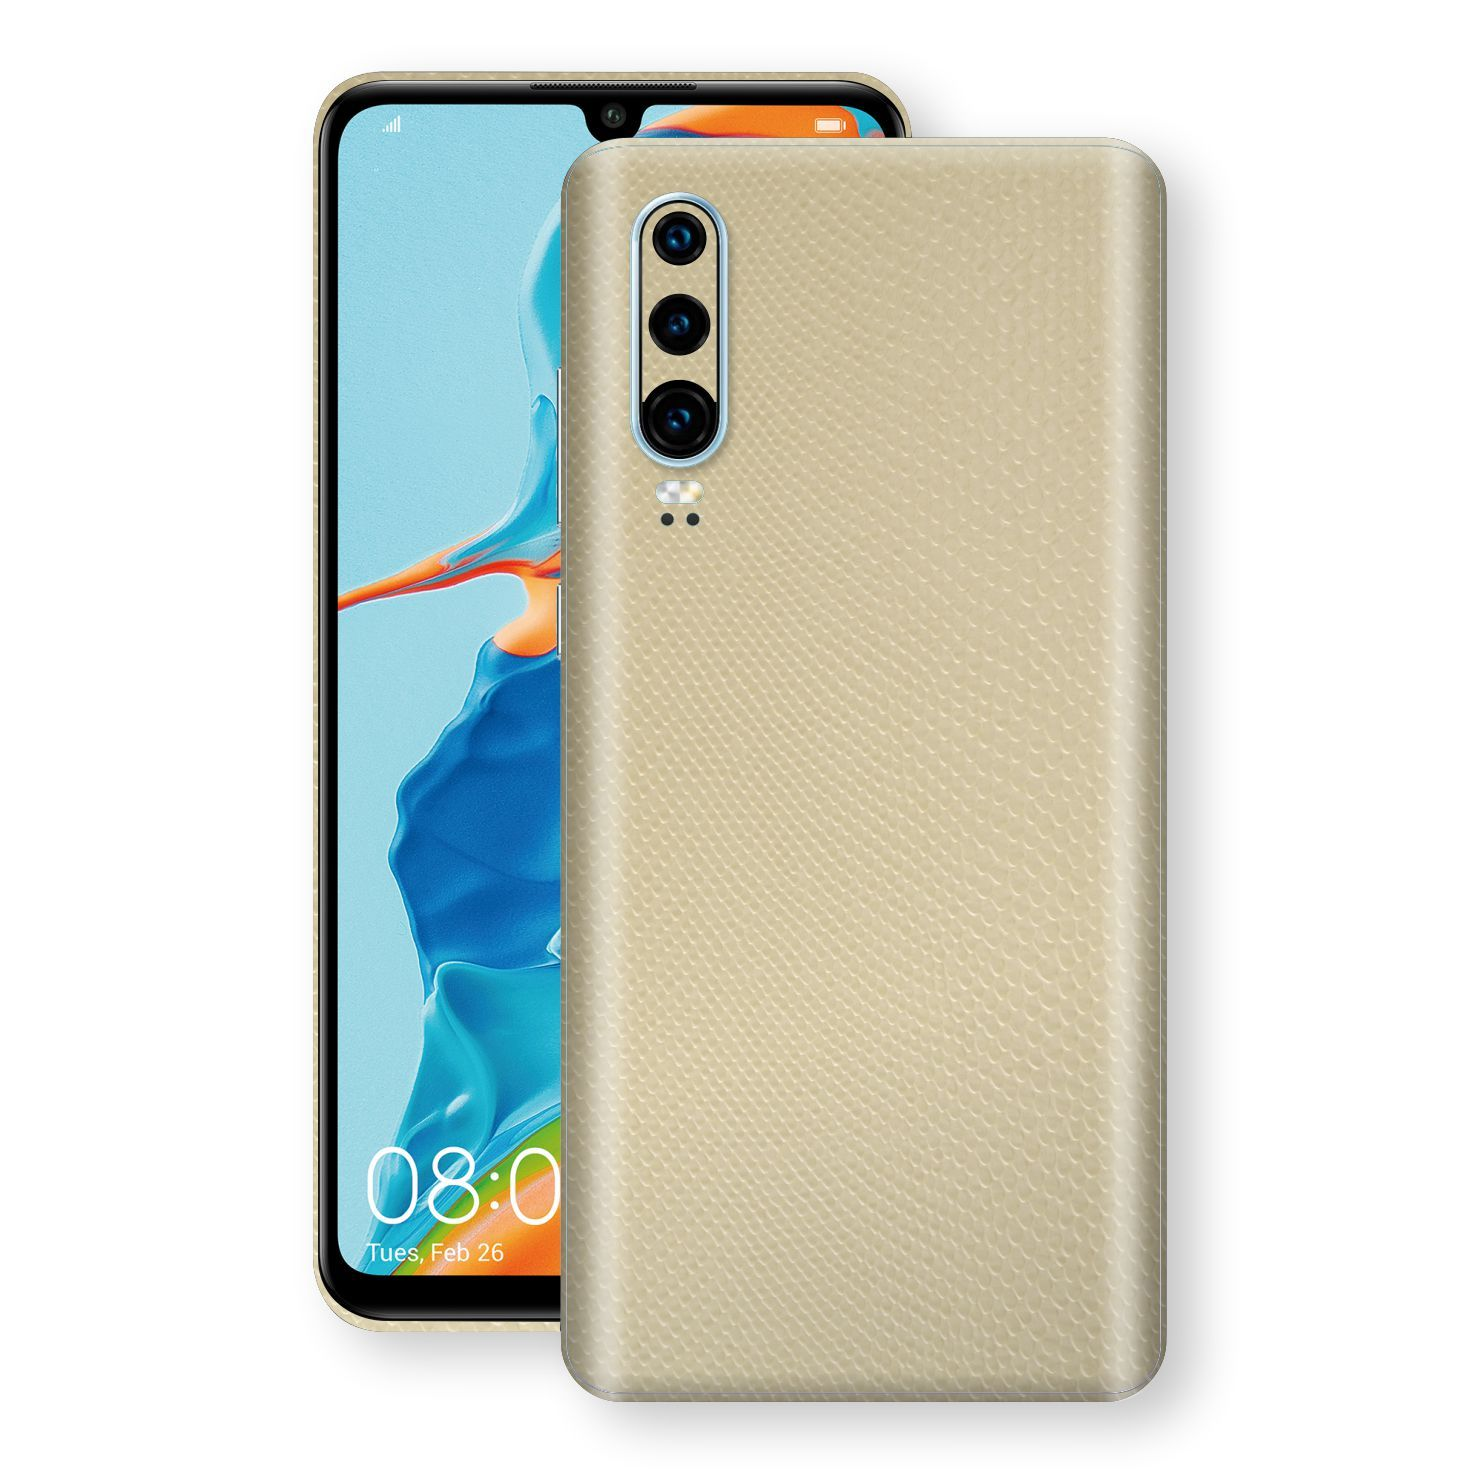 Huawei P30 Beige Mamba Snake Leather Skin, Decal, Wrap, Protector, Cover by EasySkinz | EasySkinz.com